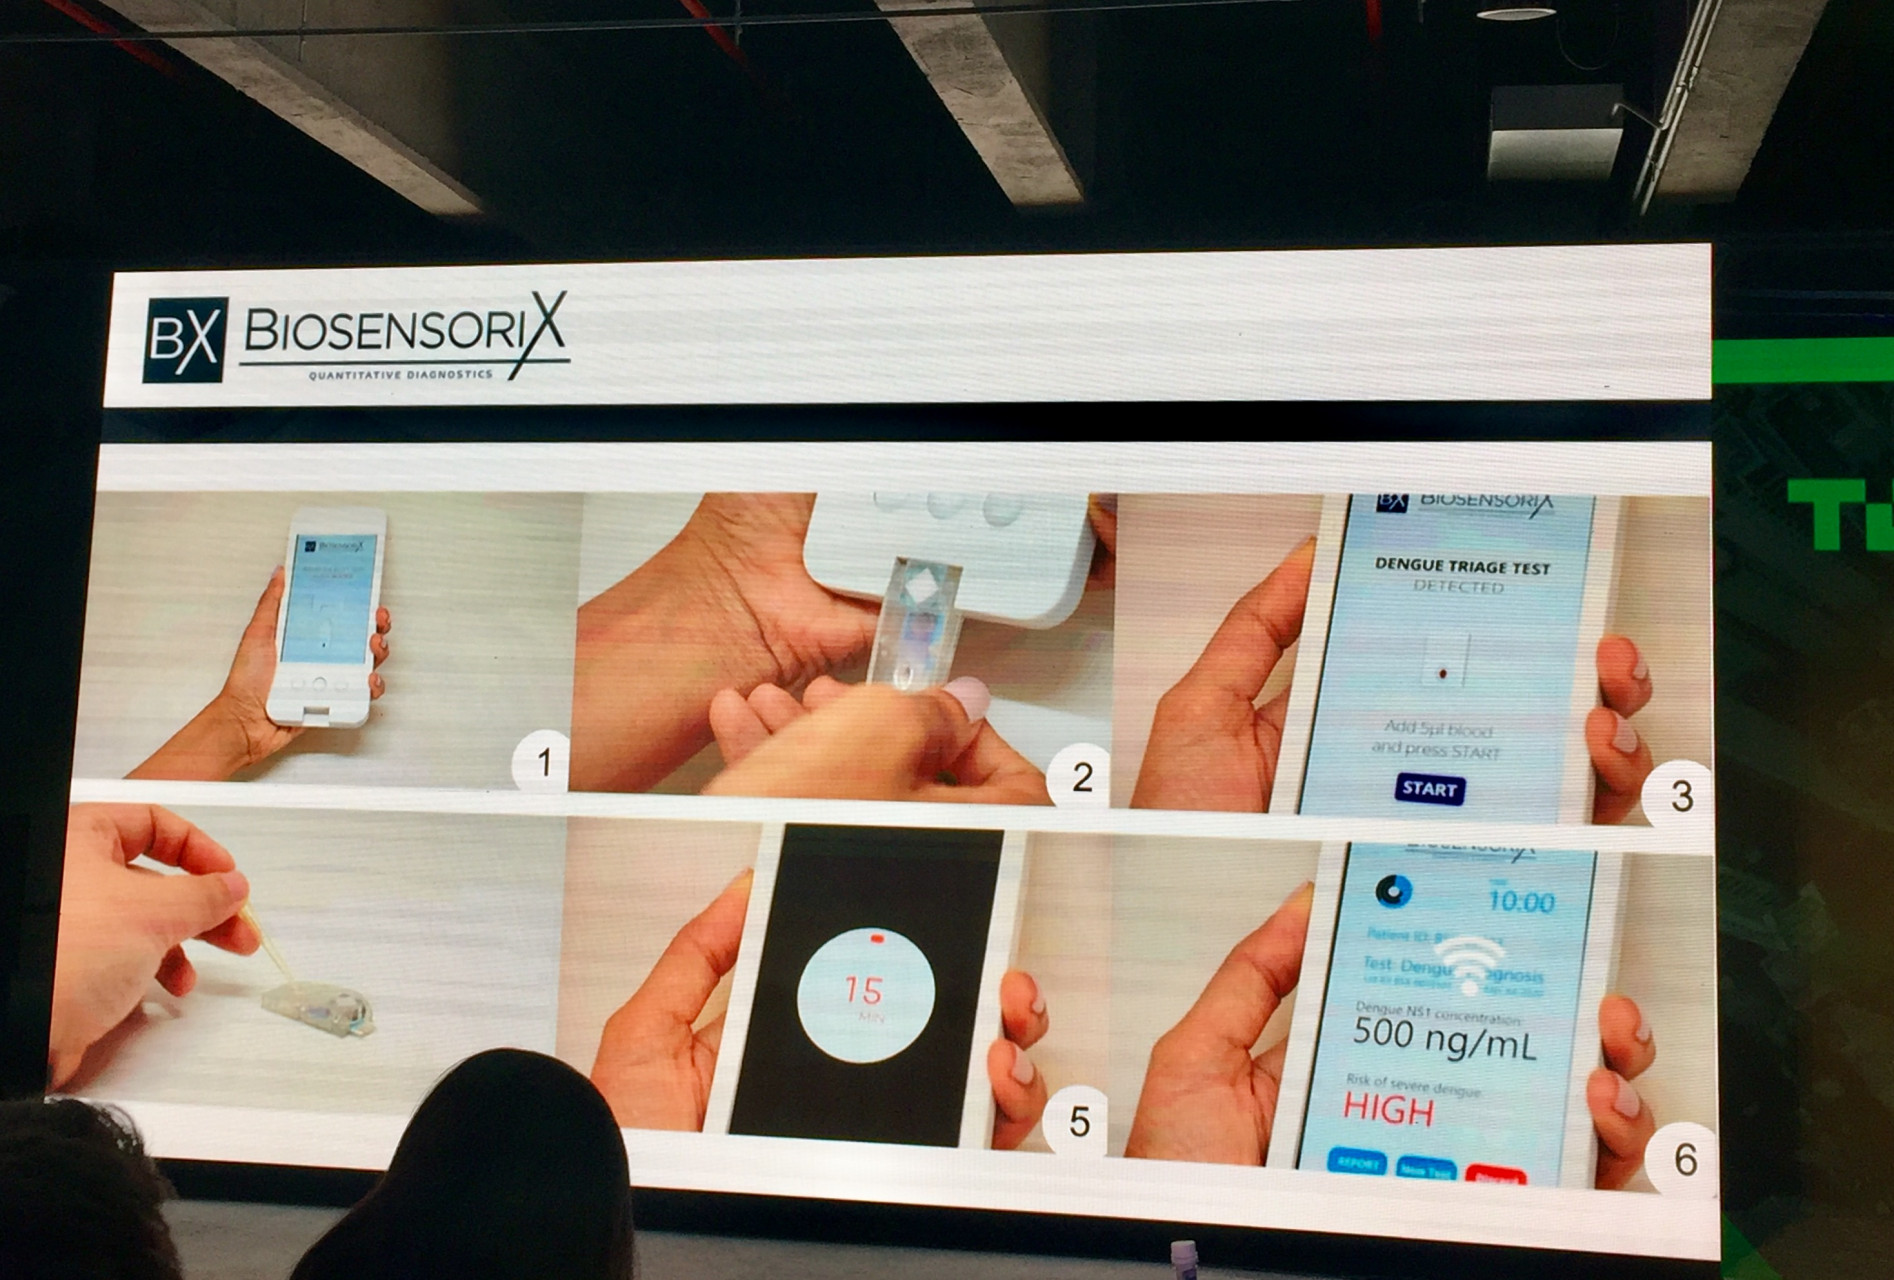 Biosensorix presentation of finger prick monitoring device for markers of stroke (Image credit: TechNode)